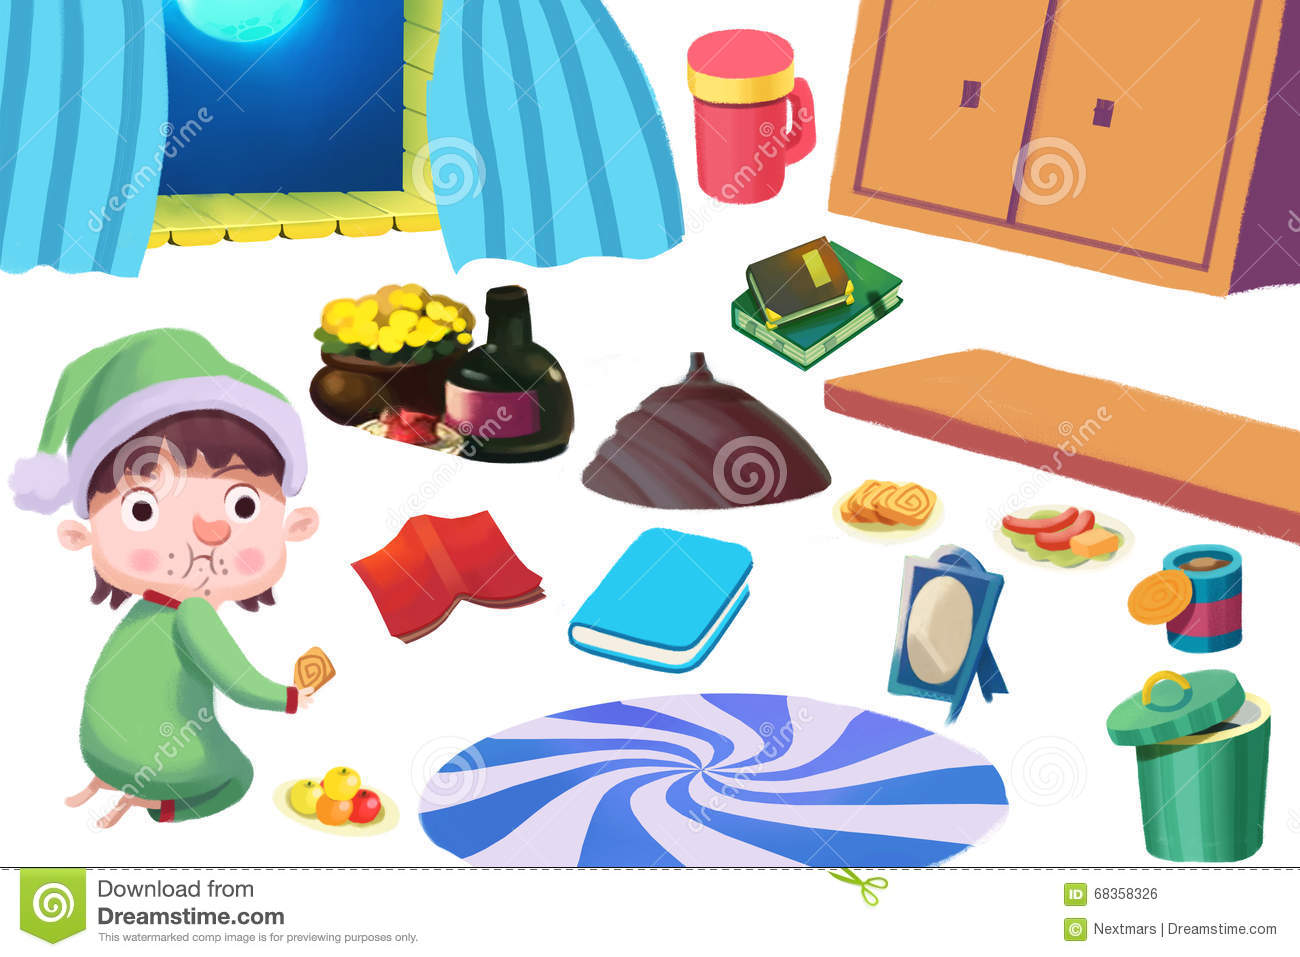 Play kitchen clip art - Clip Art Set The Kid Food And Family Kitchen Stuff